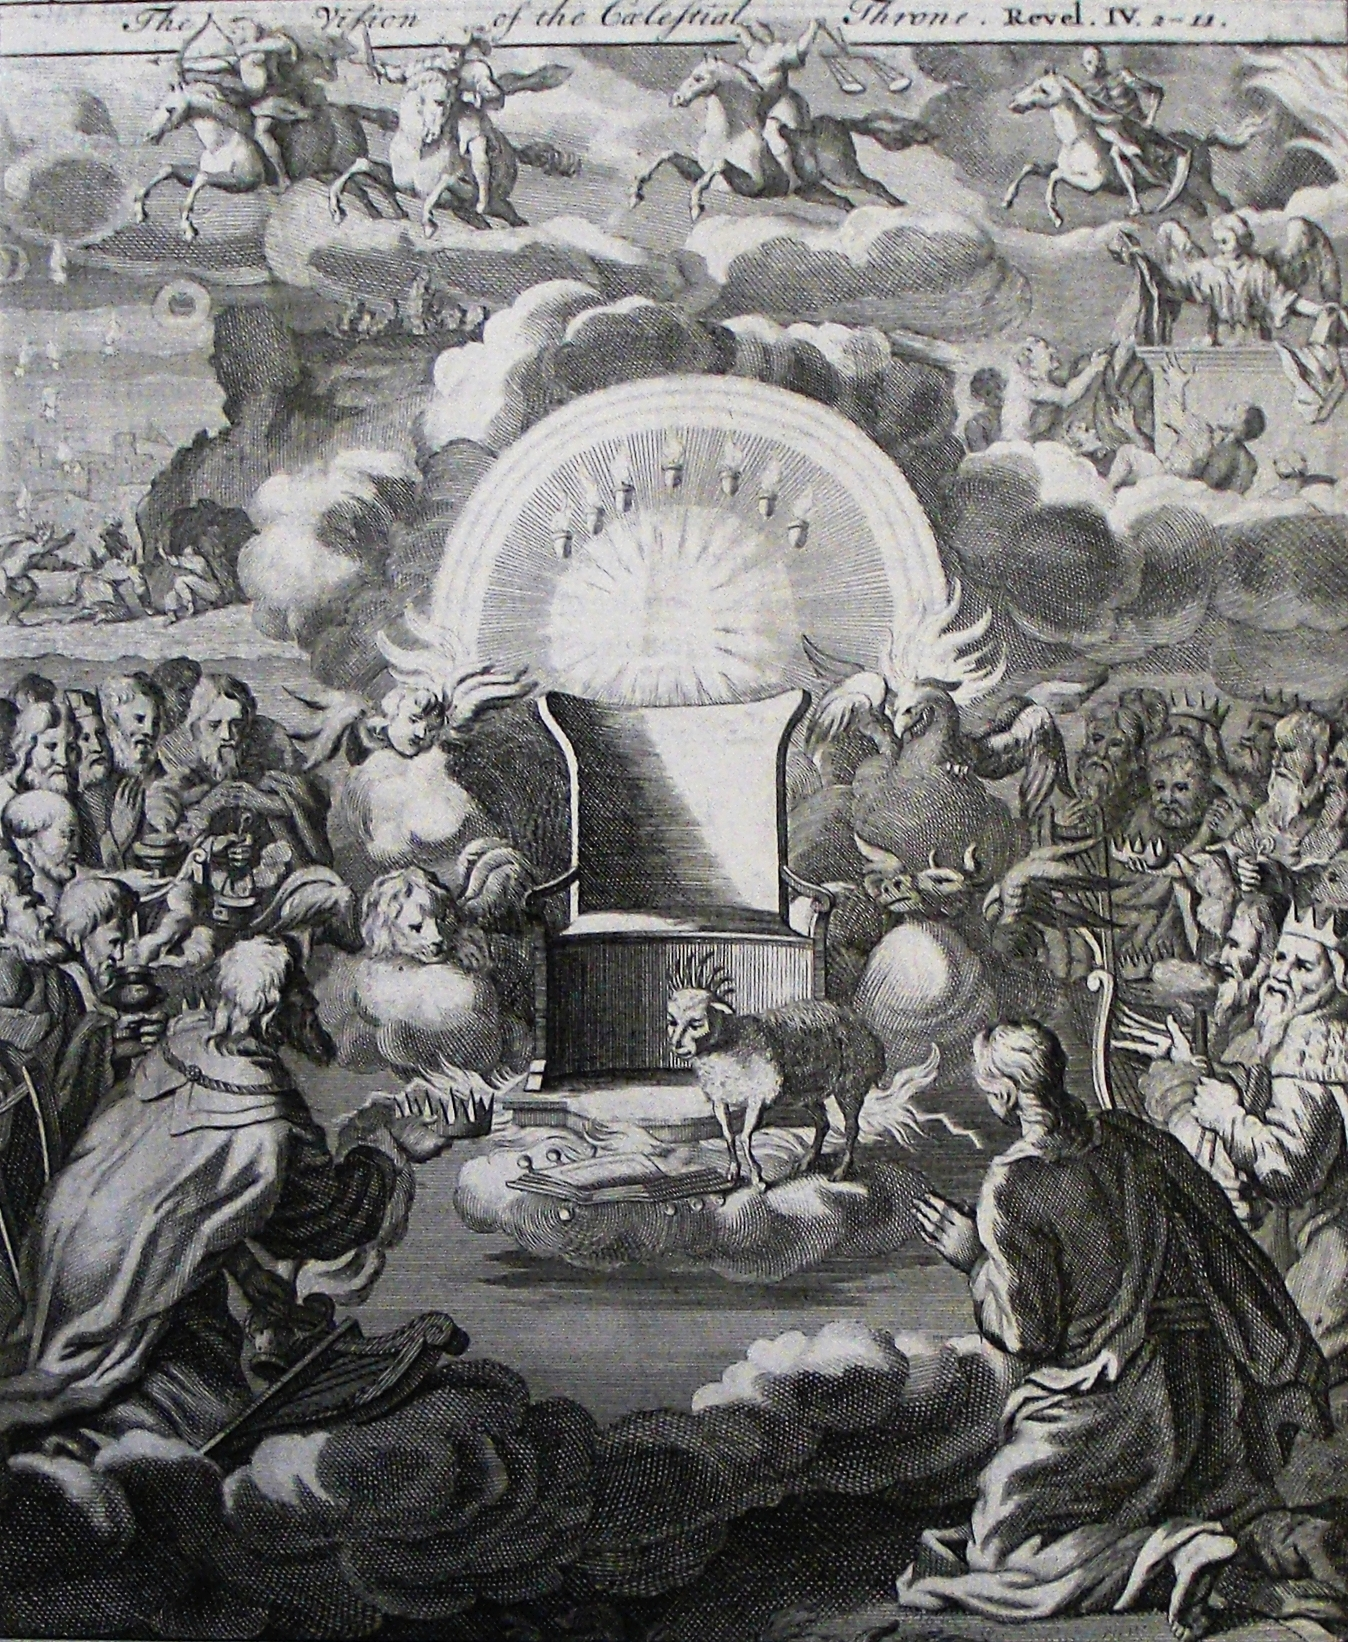 03-phillip-medhurst-apocalypse-47-john-sees-the-throne-of-god-revelation-4-v-2-scheits-jpg